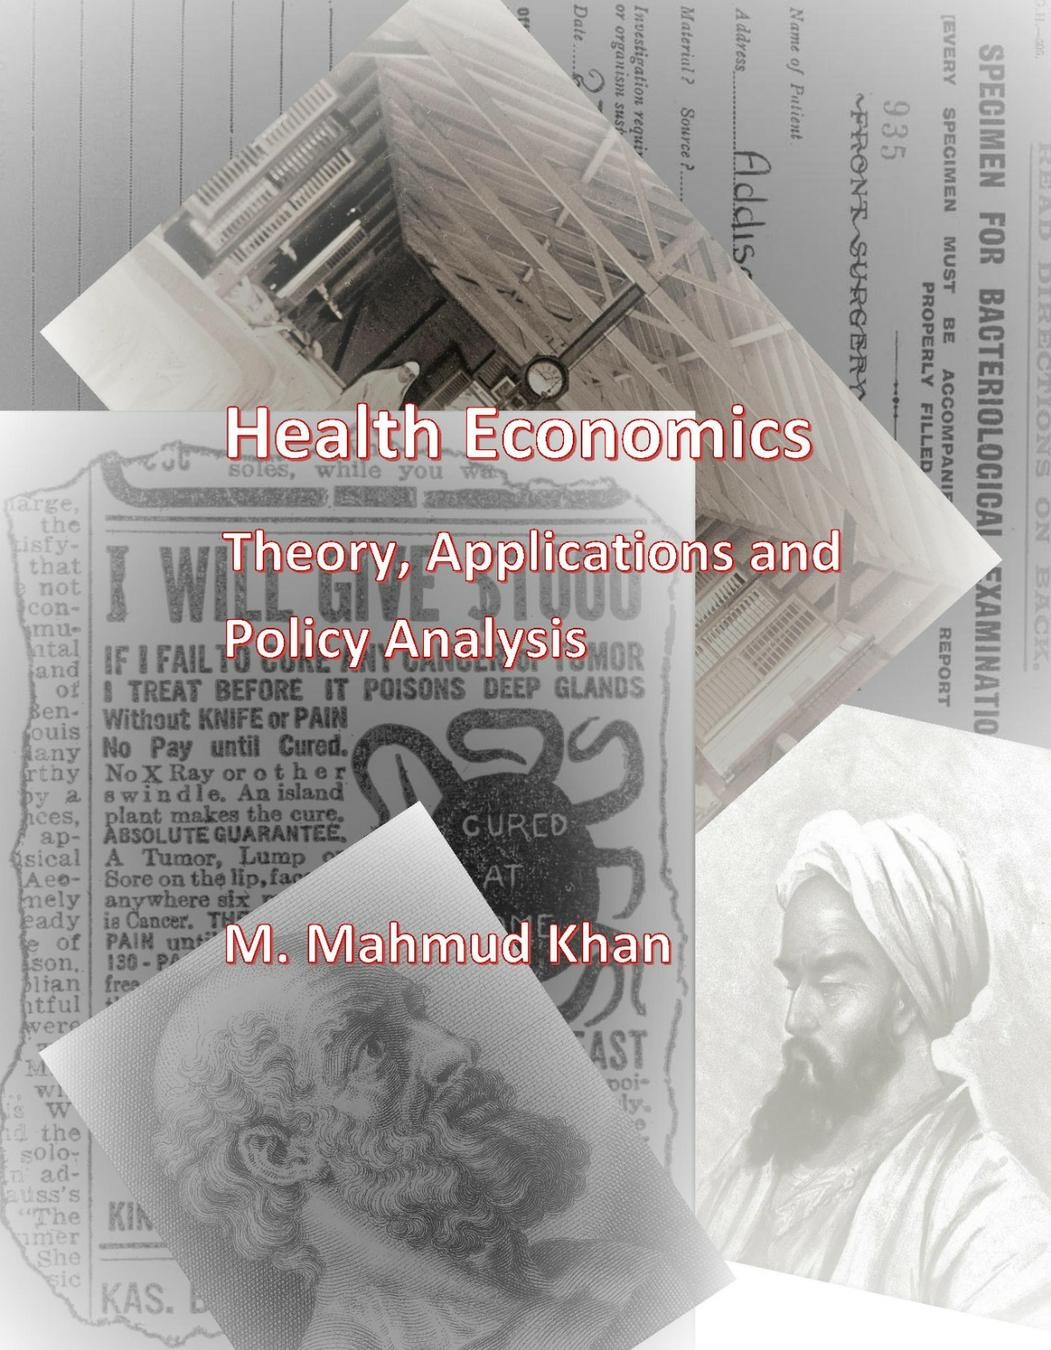 Health Economics: Theory, Applications and Policy Analysis